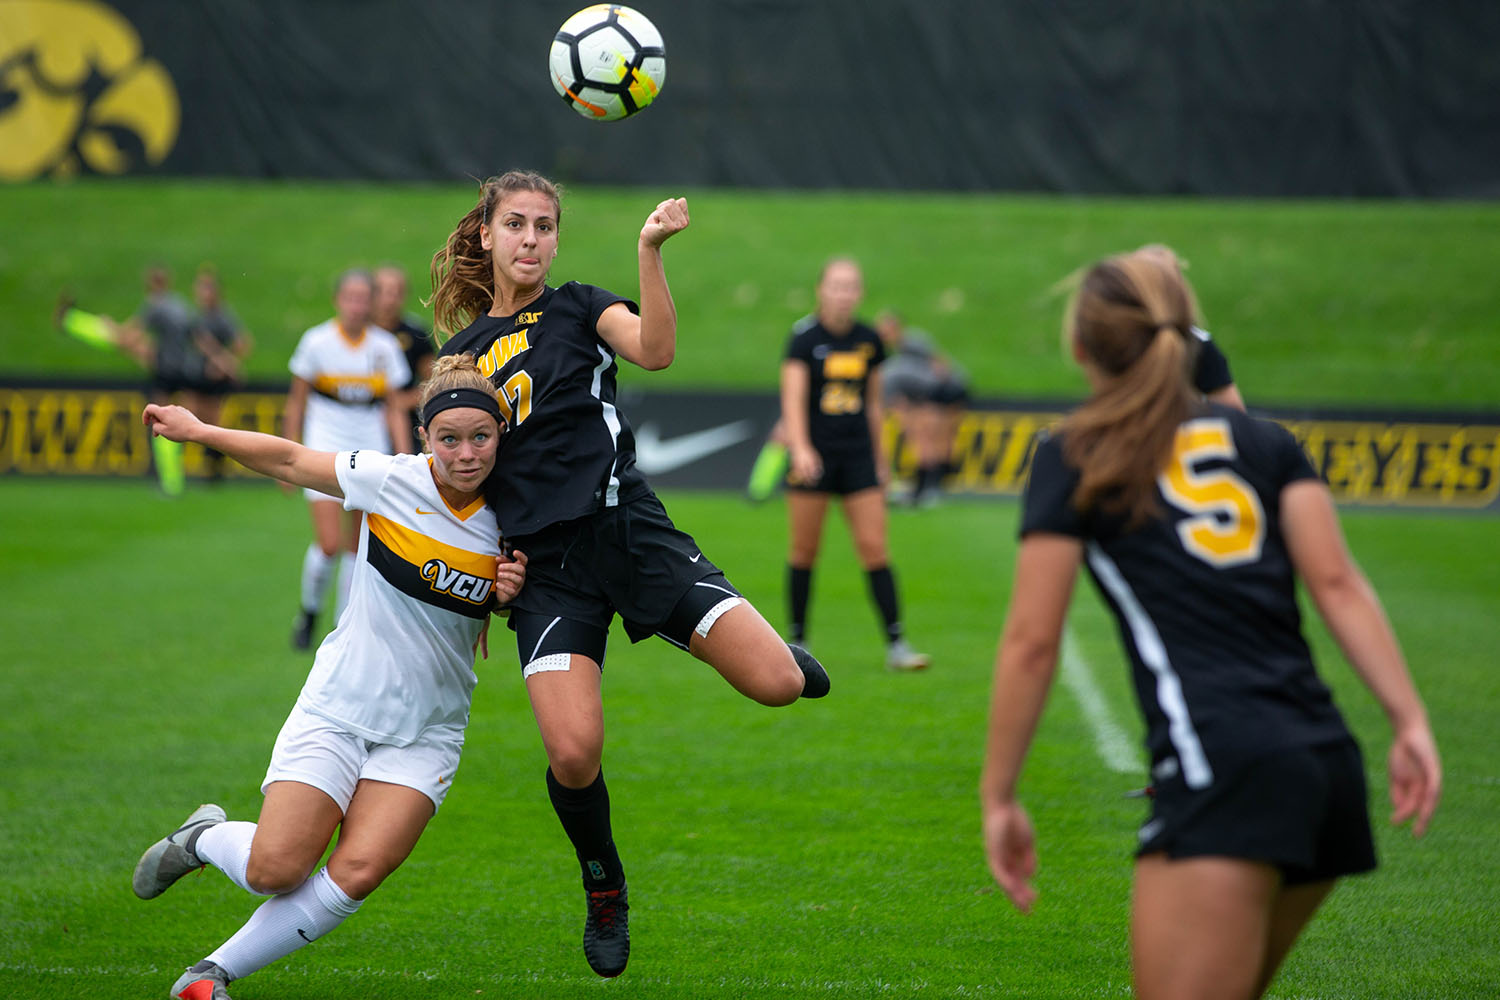 Defender Hannah Drkulec fights for the ball during a game against Virginia Commonwealth University on Sep 2, 2018. The Hawkeyes won the match 2-0.